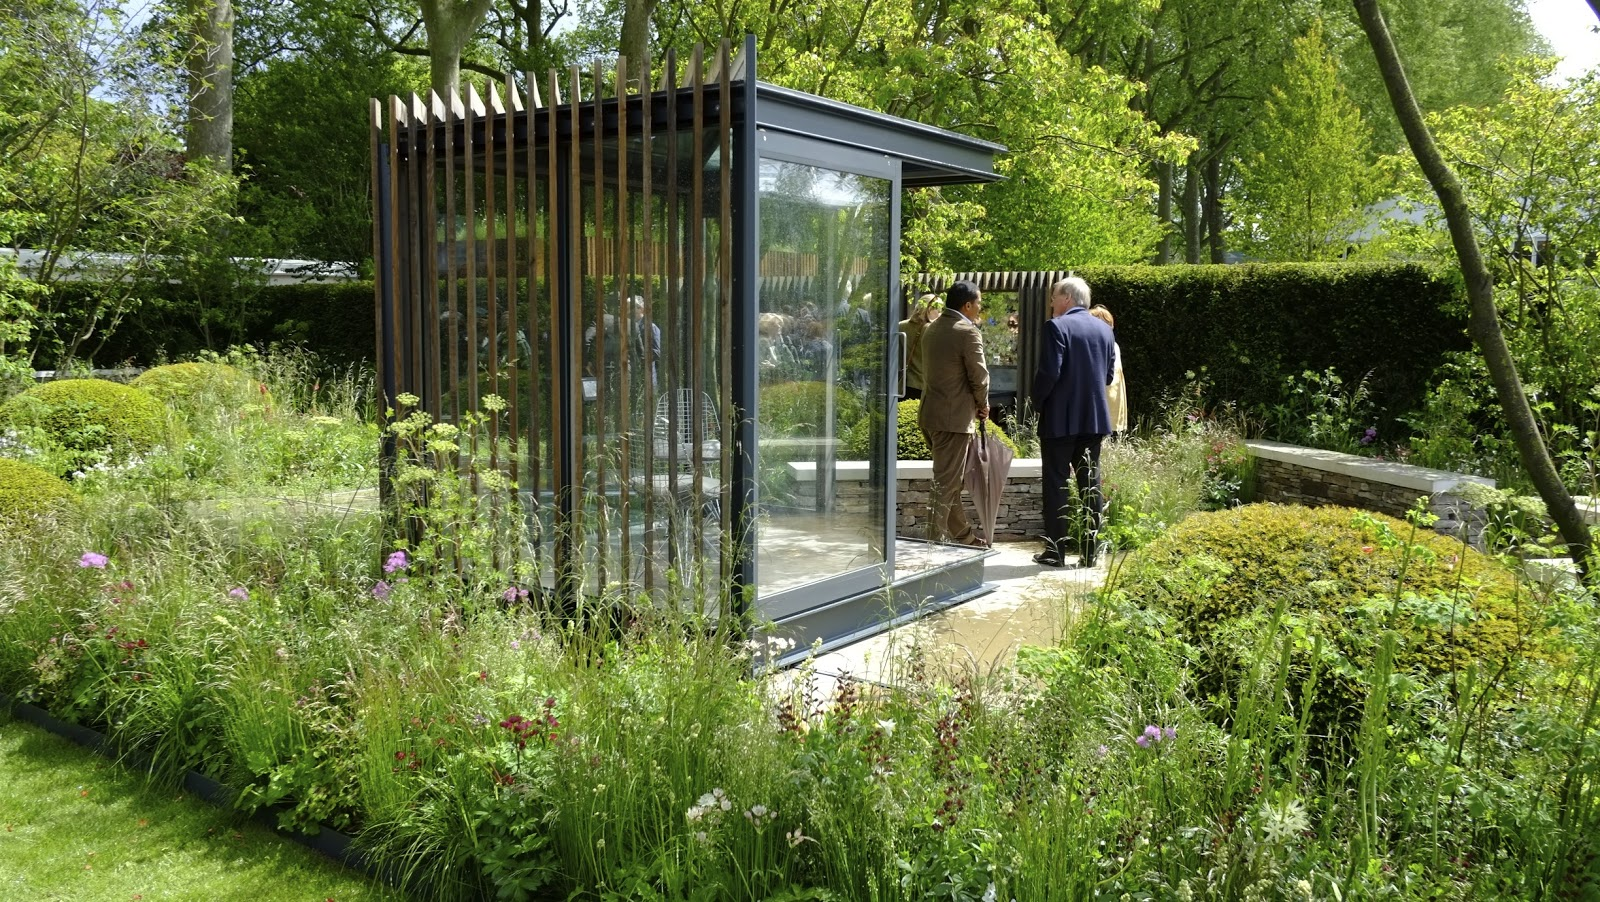 and this is what last years gold winning cloudy bay garden with garden office looked like below